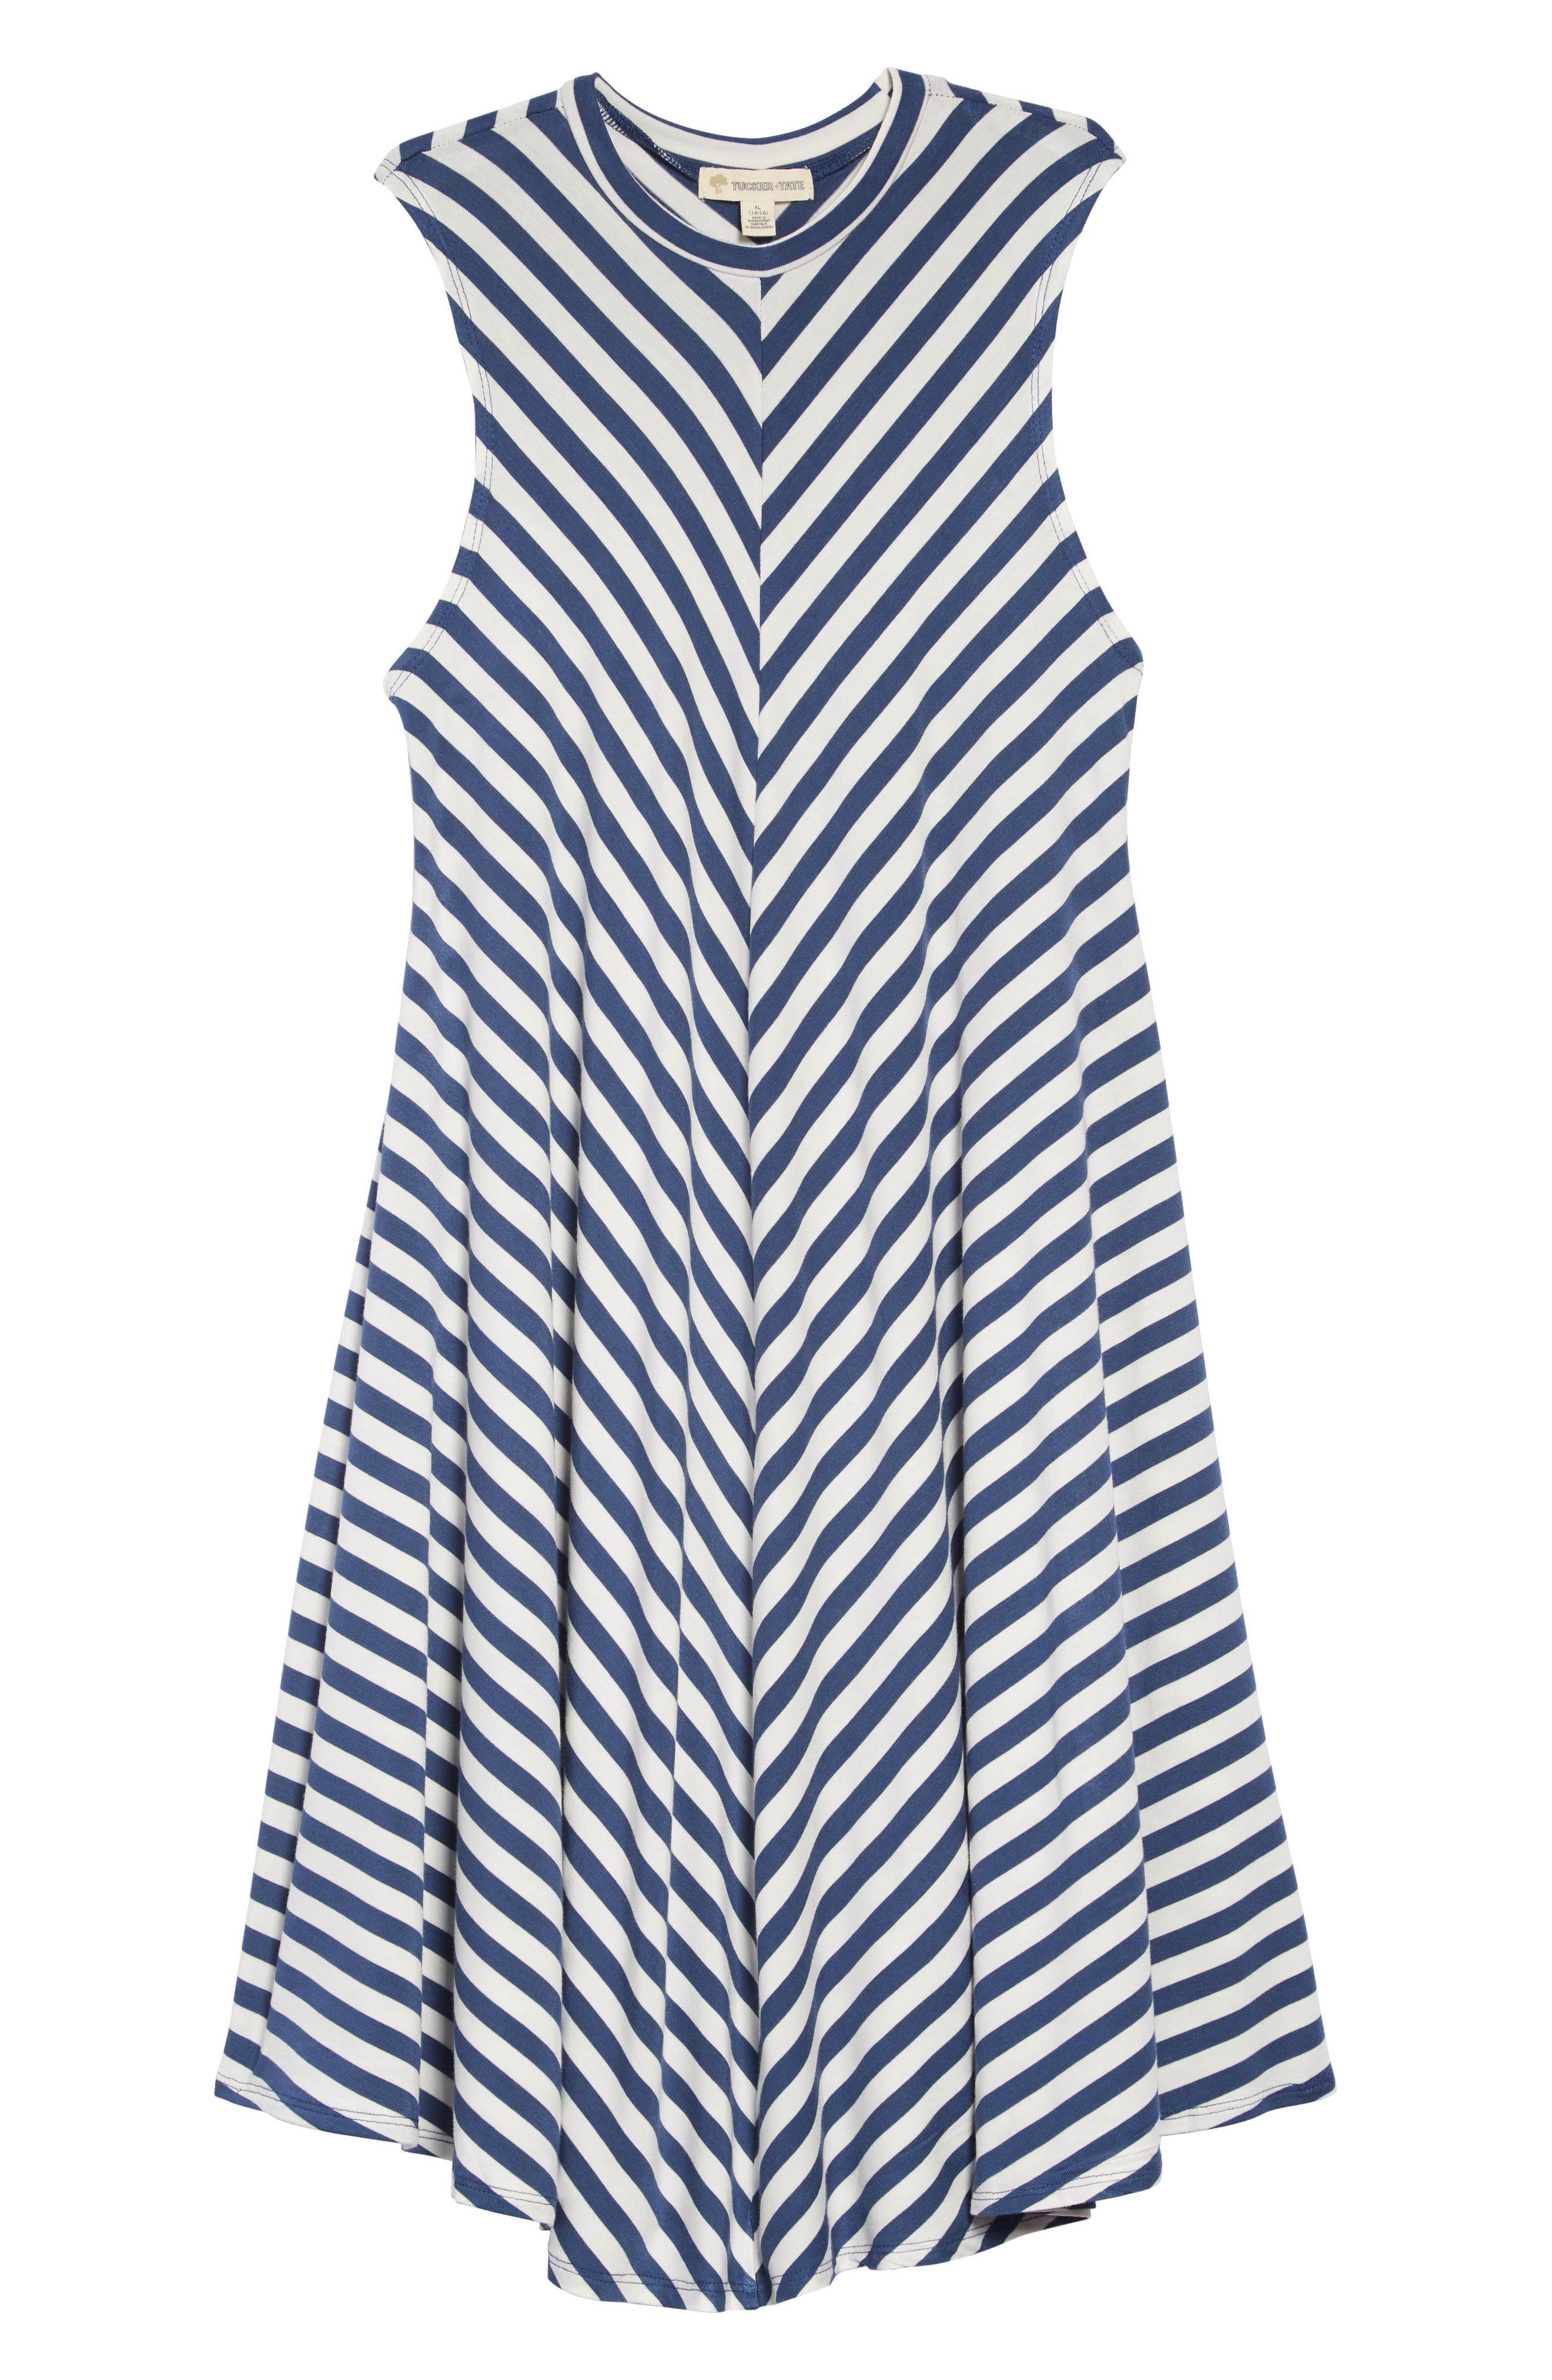 TUCKER + TATE Print Sleeveless Knit Dress, Main, color, NAVY DENIM- IVORY STRIPE